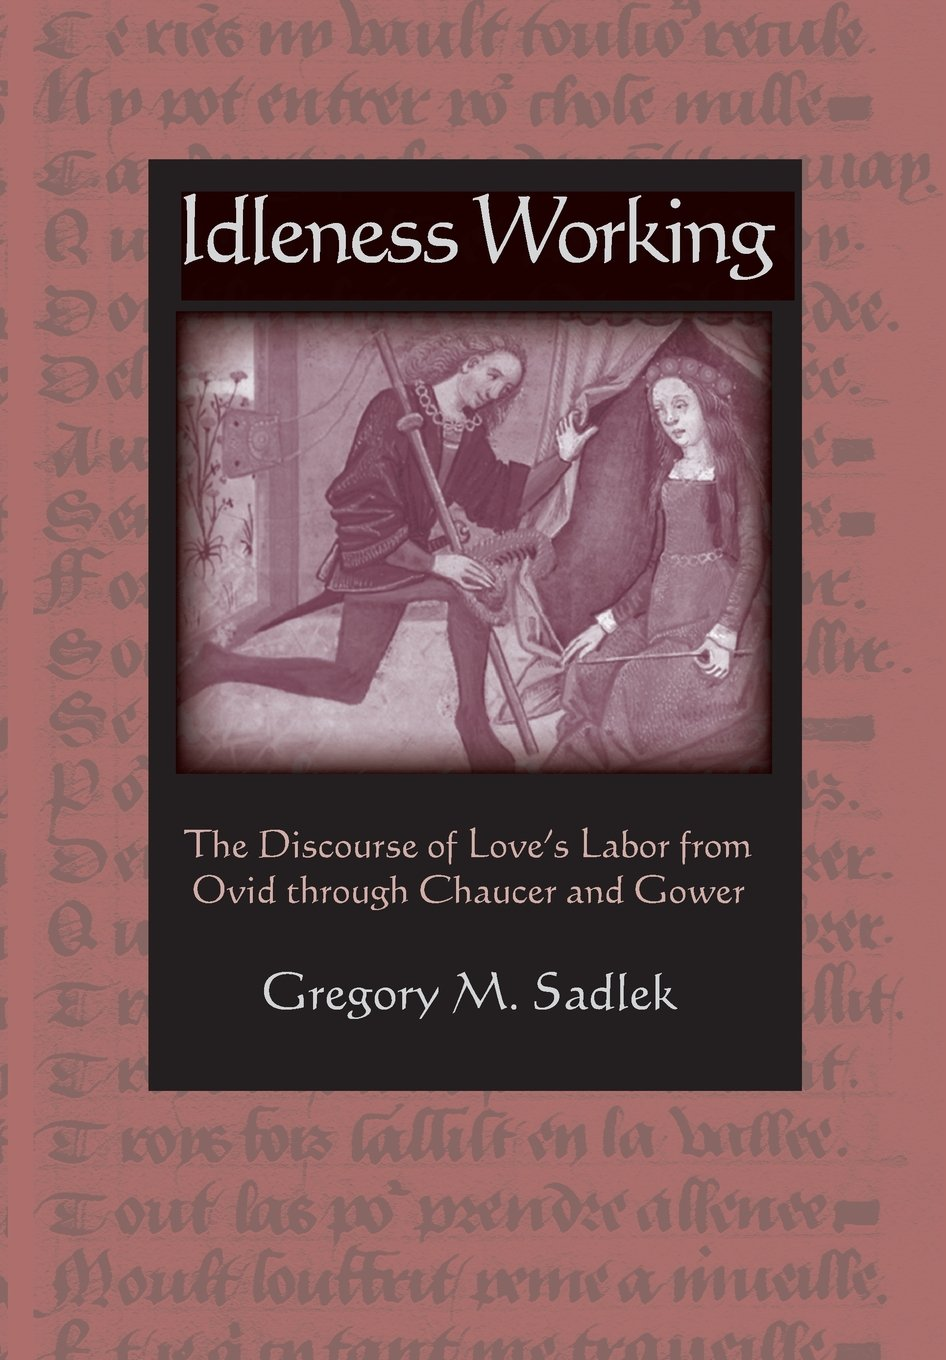 Download Idleness Working: The Discourse of Love's Labor from Ovid through Chaucer and Gower PDF